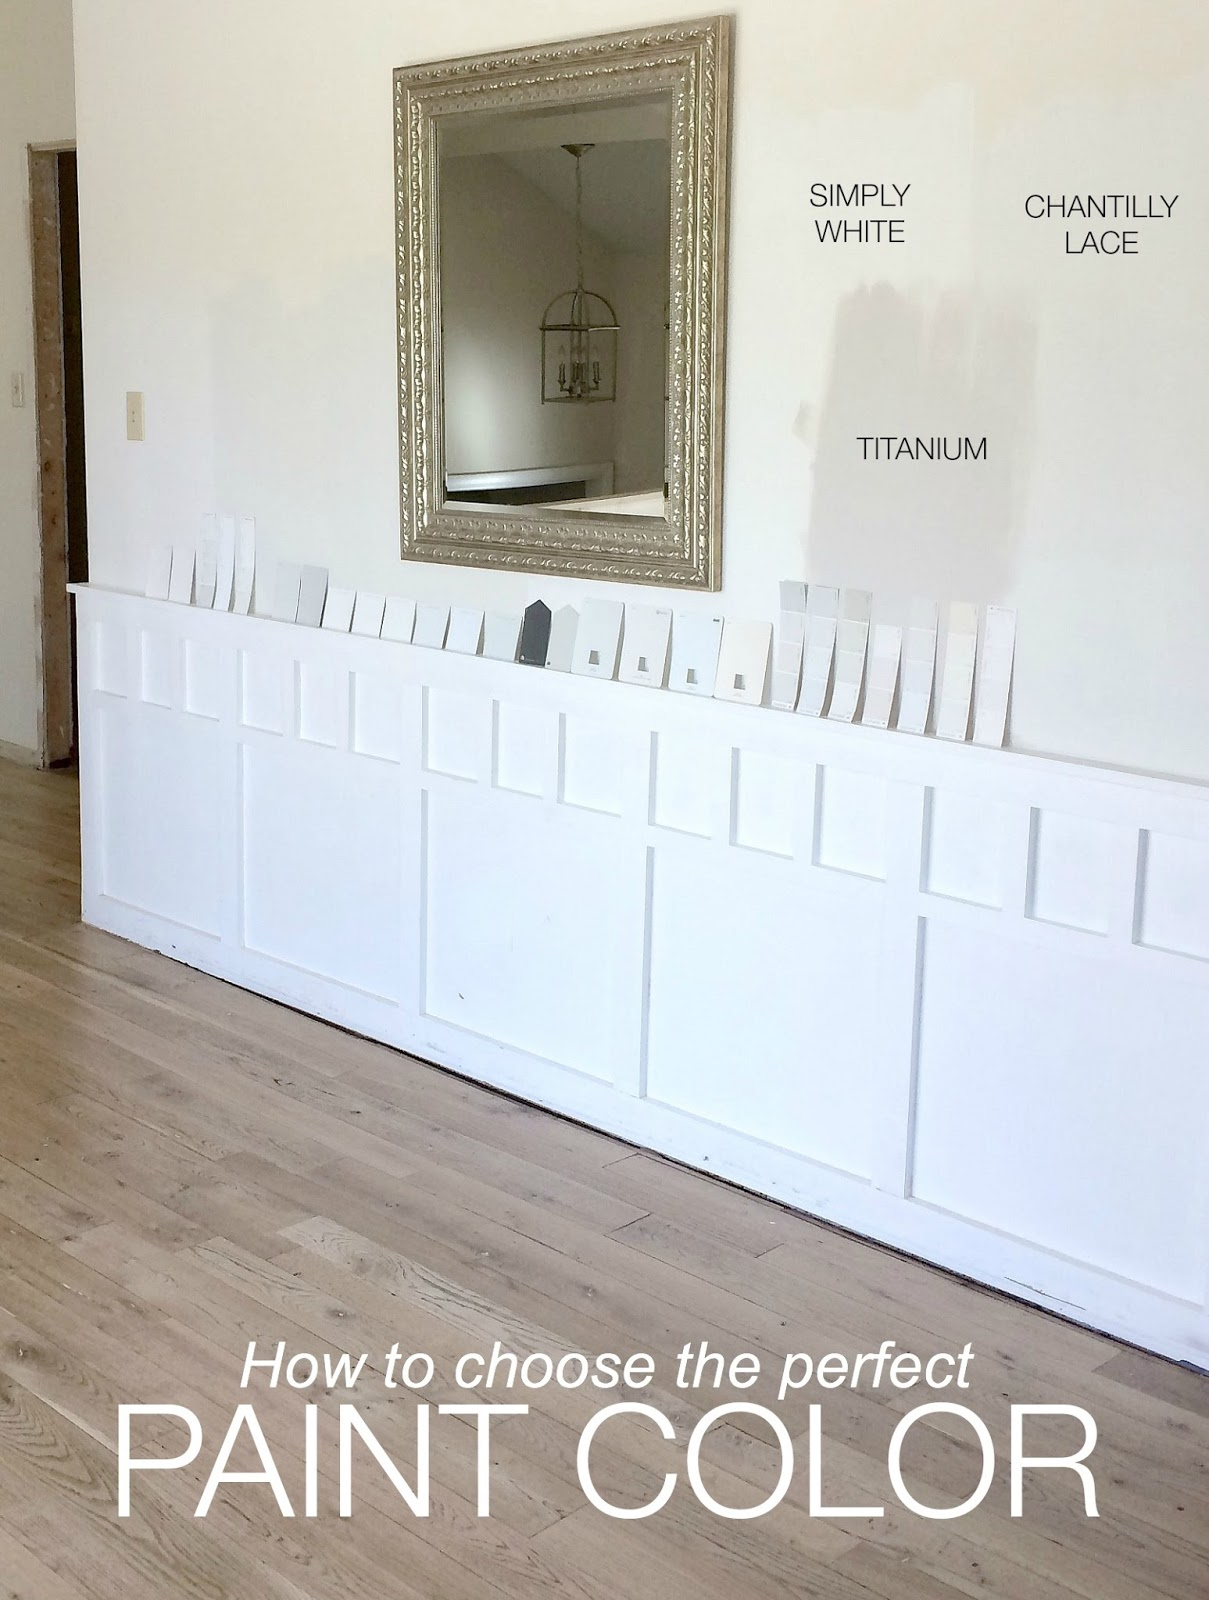 How to choose a paint color 10 tips to help you decide - How to pick a paint color for living room ...